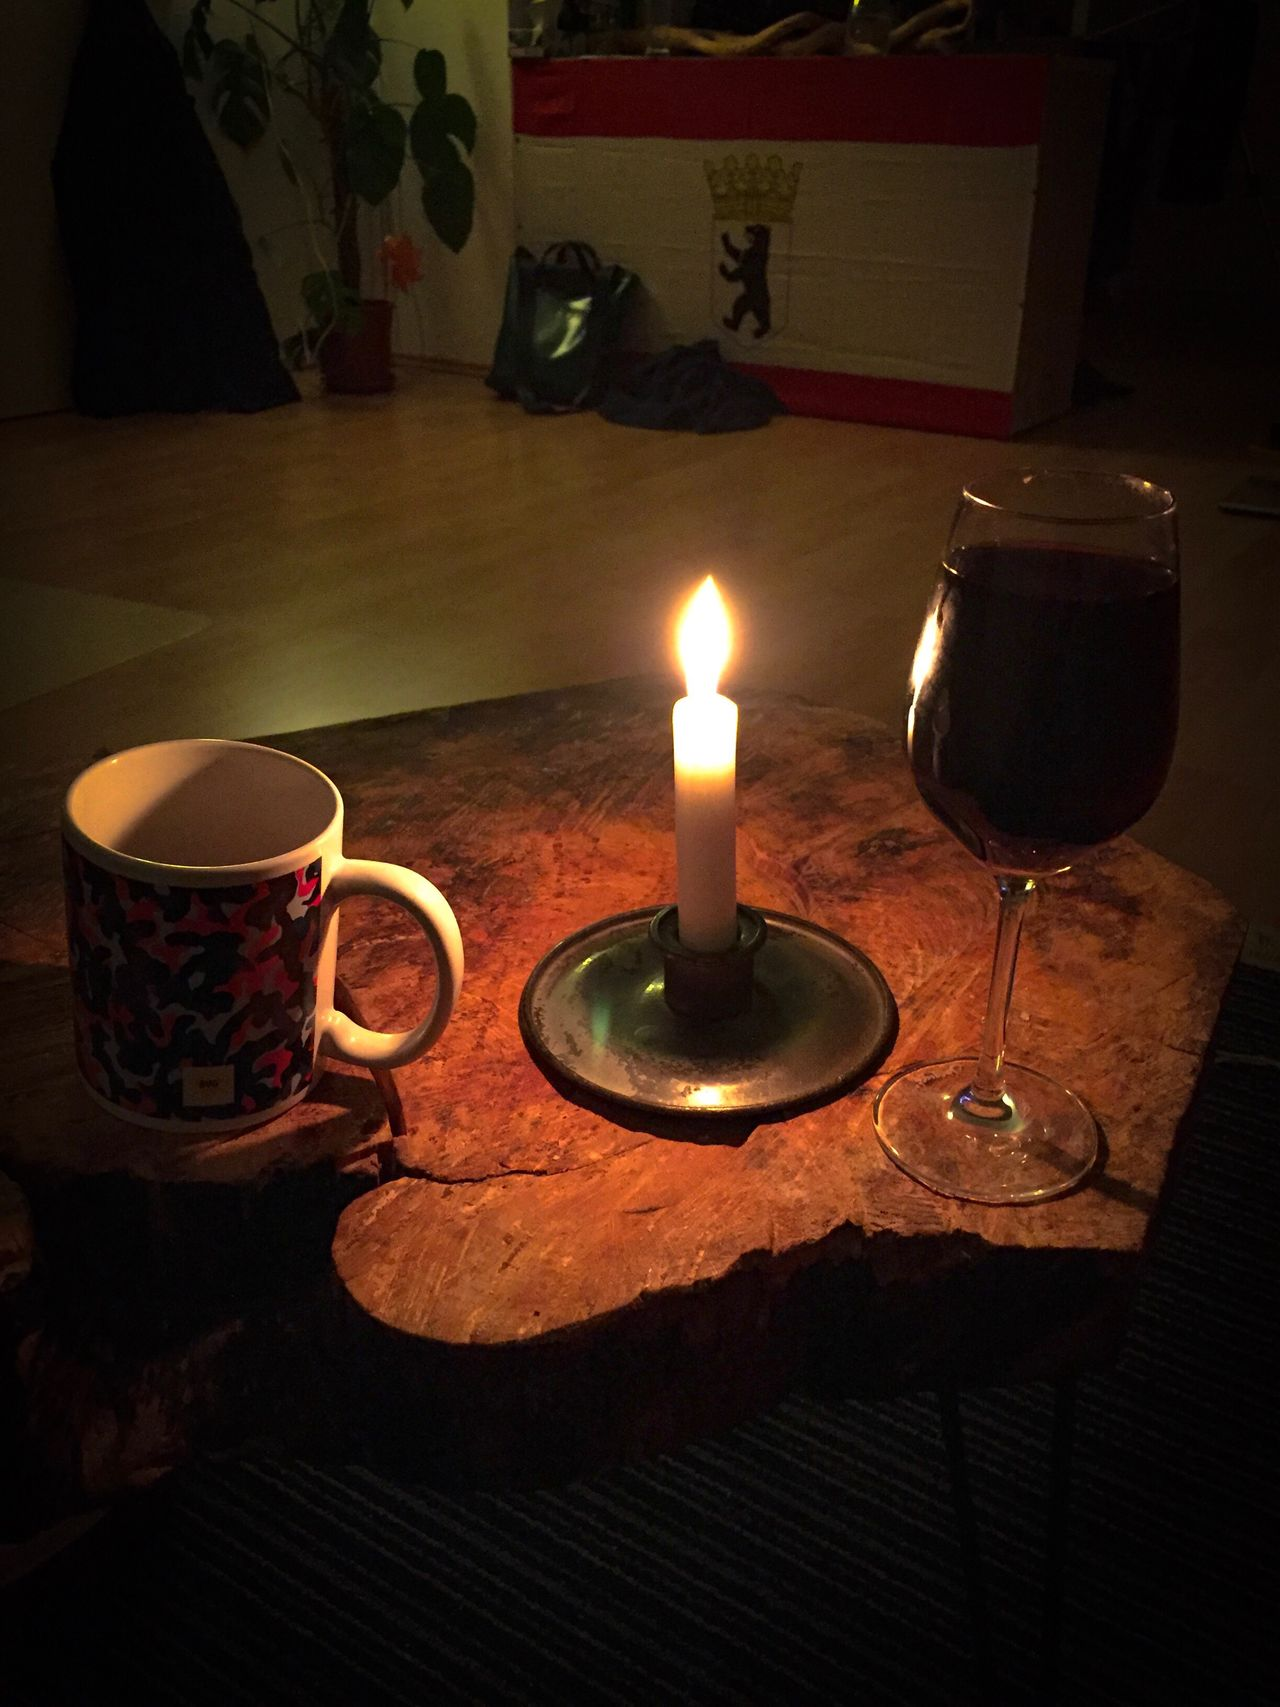 Home Interior Table Indoors  Candle Illuminated Dark Freshness No People Burning Flame Night Close-up Ready-to-eat Berlin Flag Vine